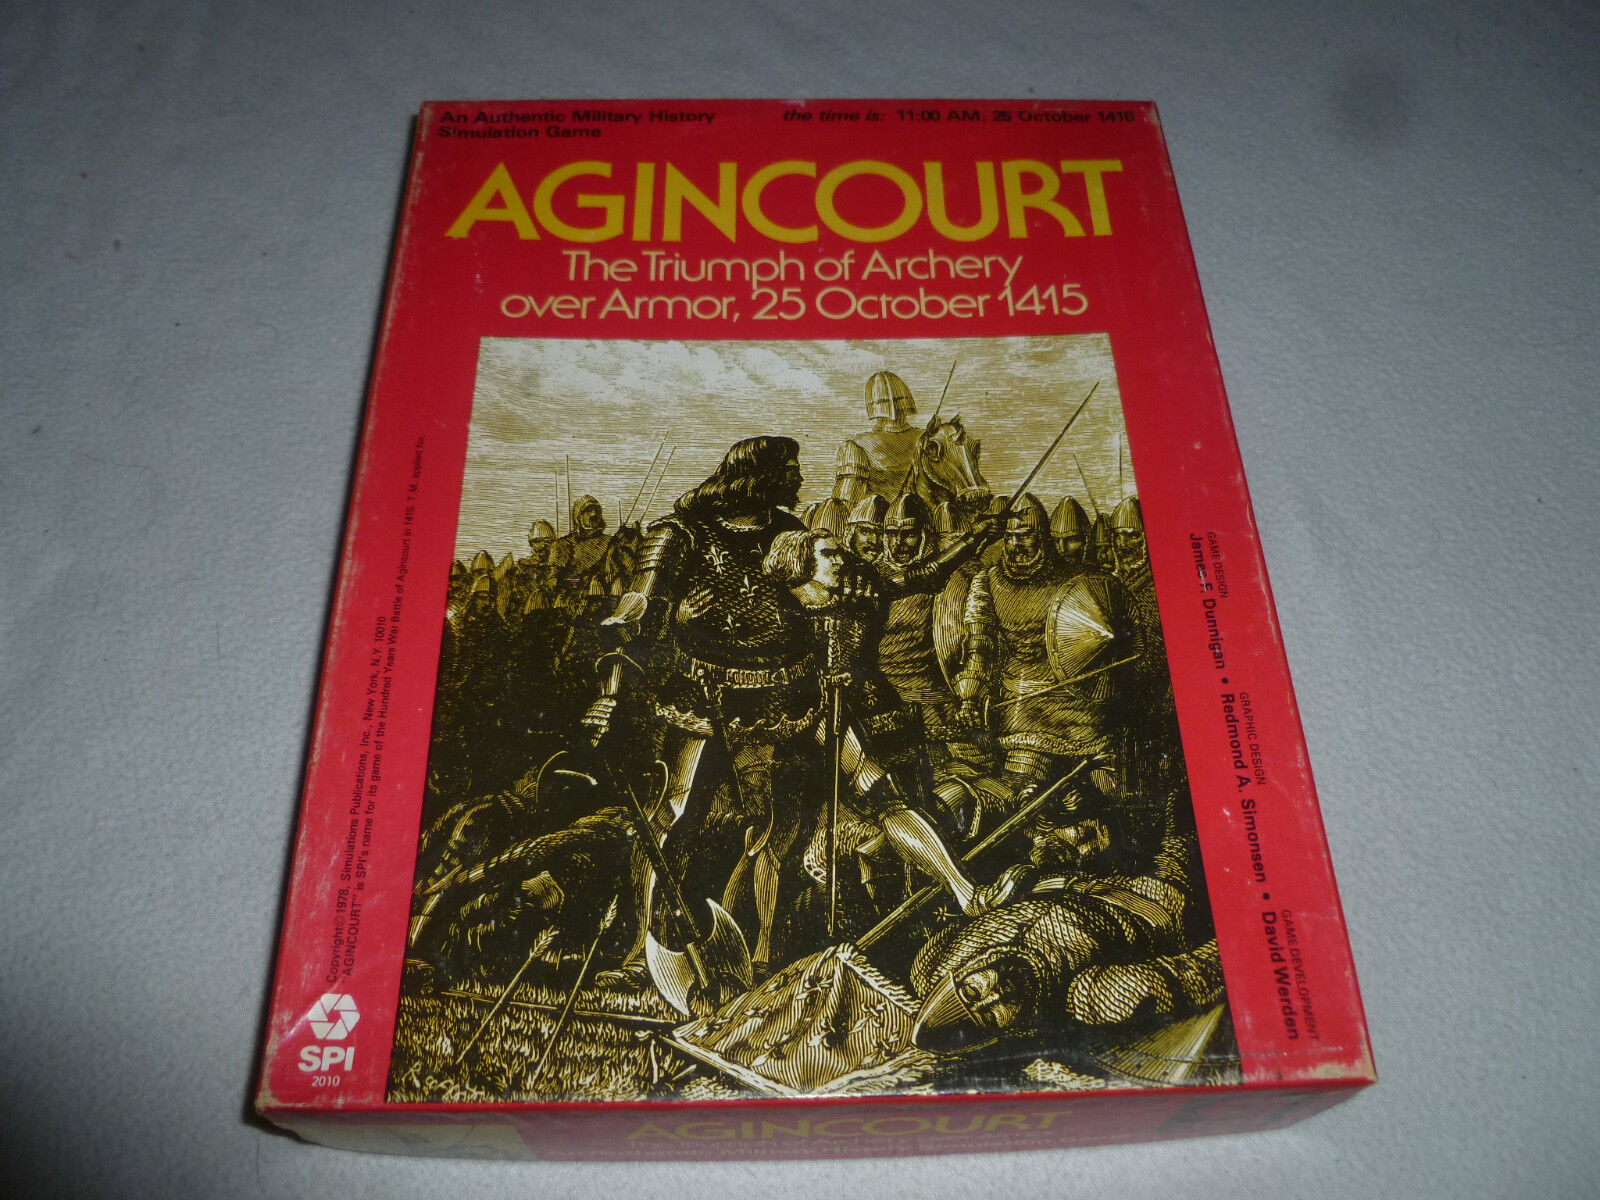 VINTAGE BOXED 1978 AGINCOURT THE TRIUMPH OF ARCHERY OVER ARMOR SPI GAME 2010